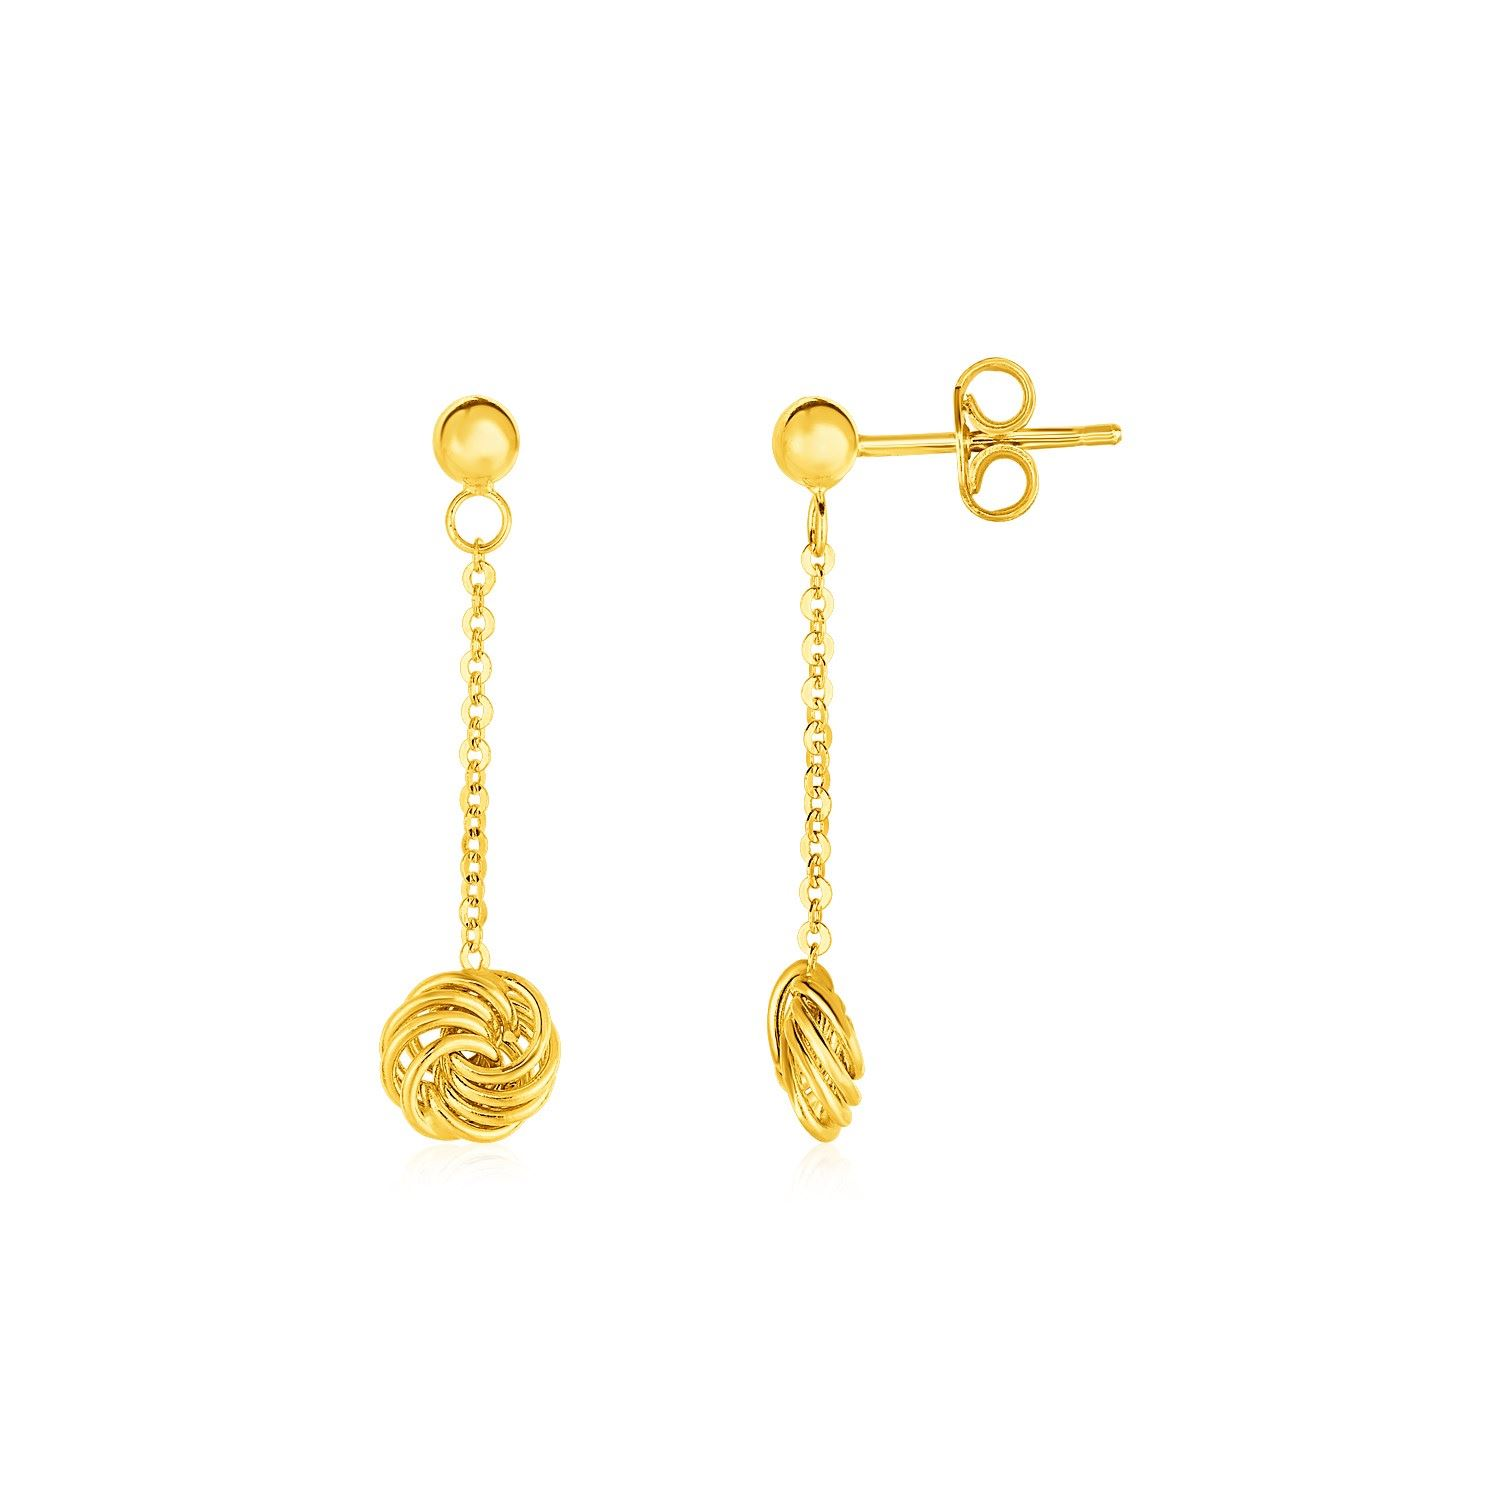 fa7007f8f Loading zoom · Image 1 : Post Earrings with Love Knot Drops in 14K Yellow  Gold